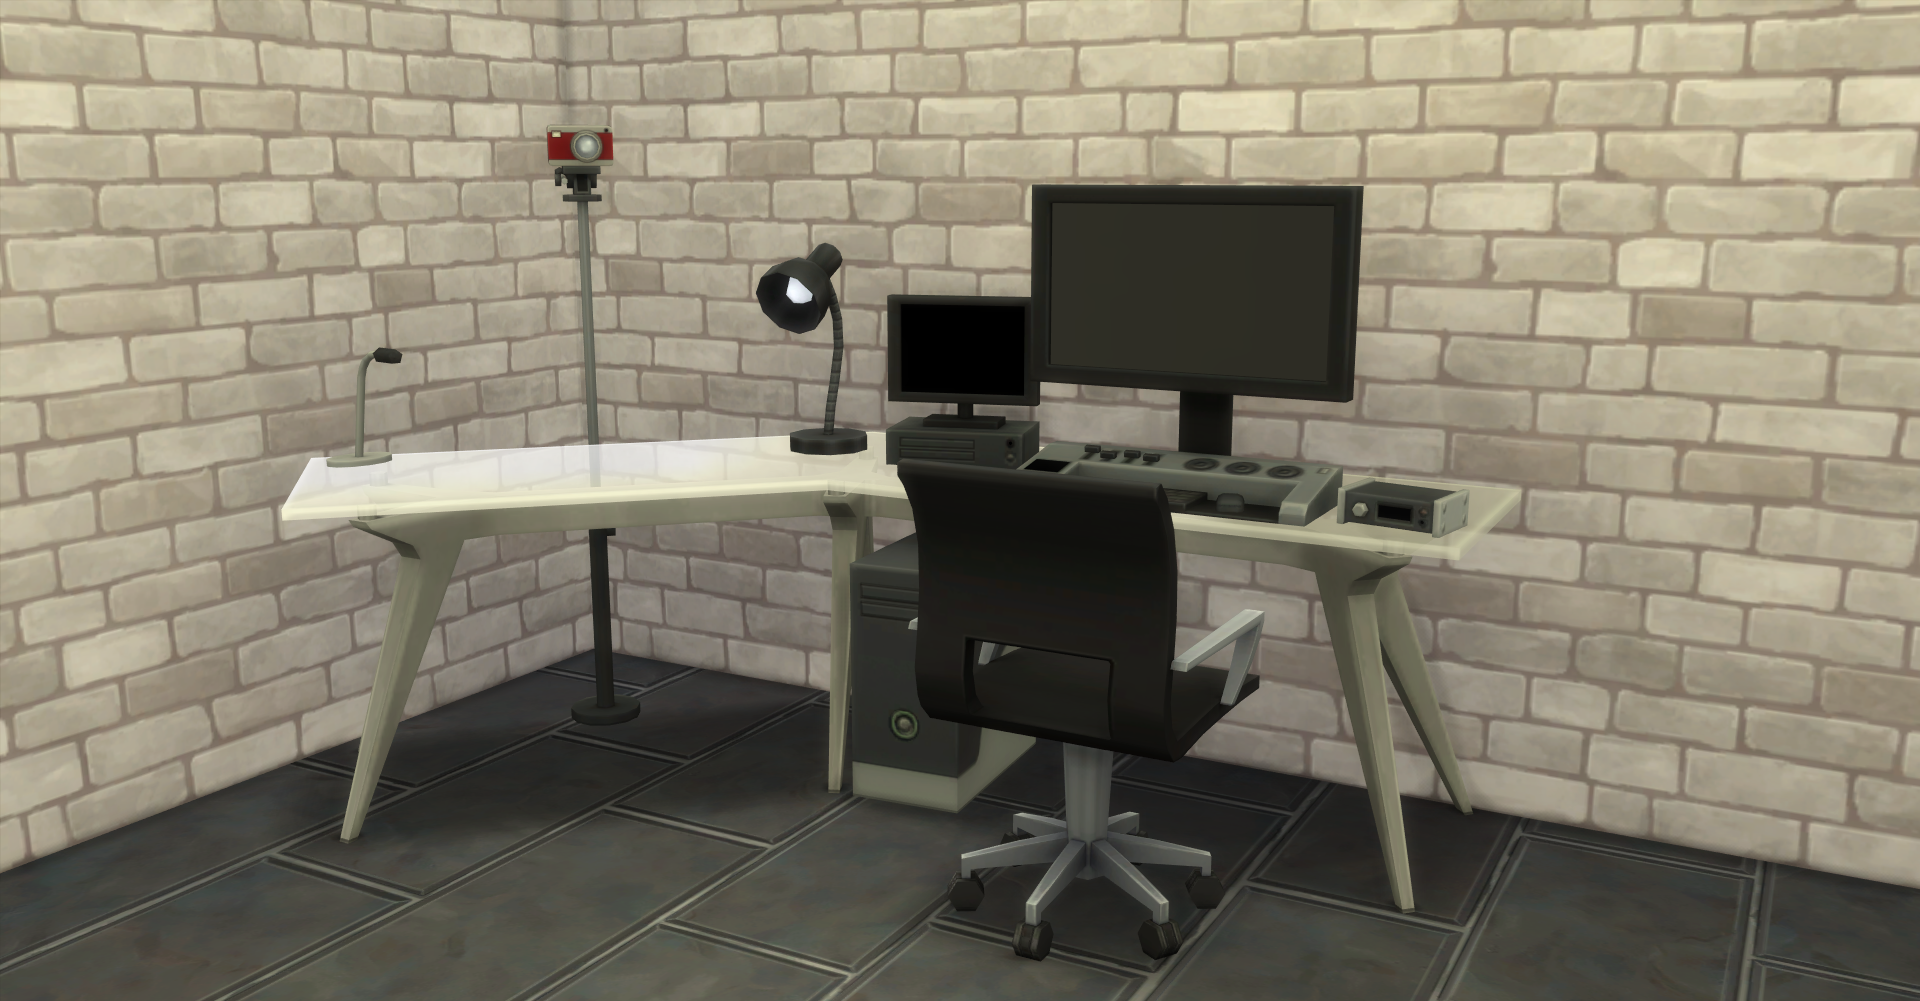 Video station | The Sims Wiki | FANDOM powered by Wikia